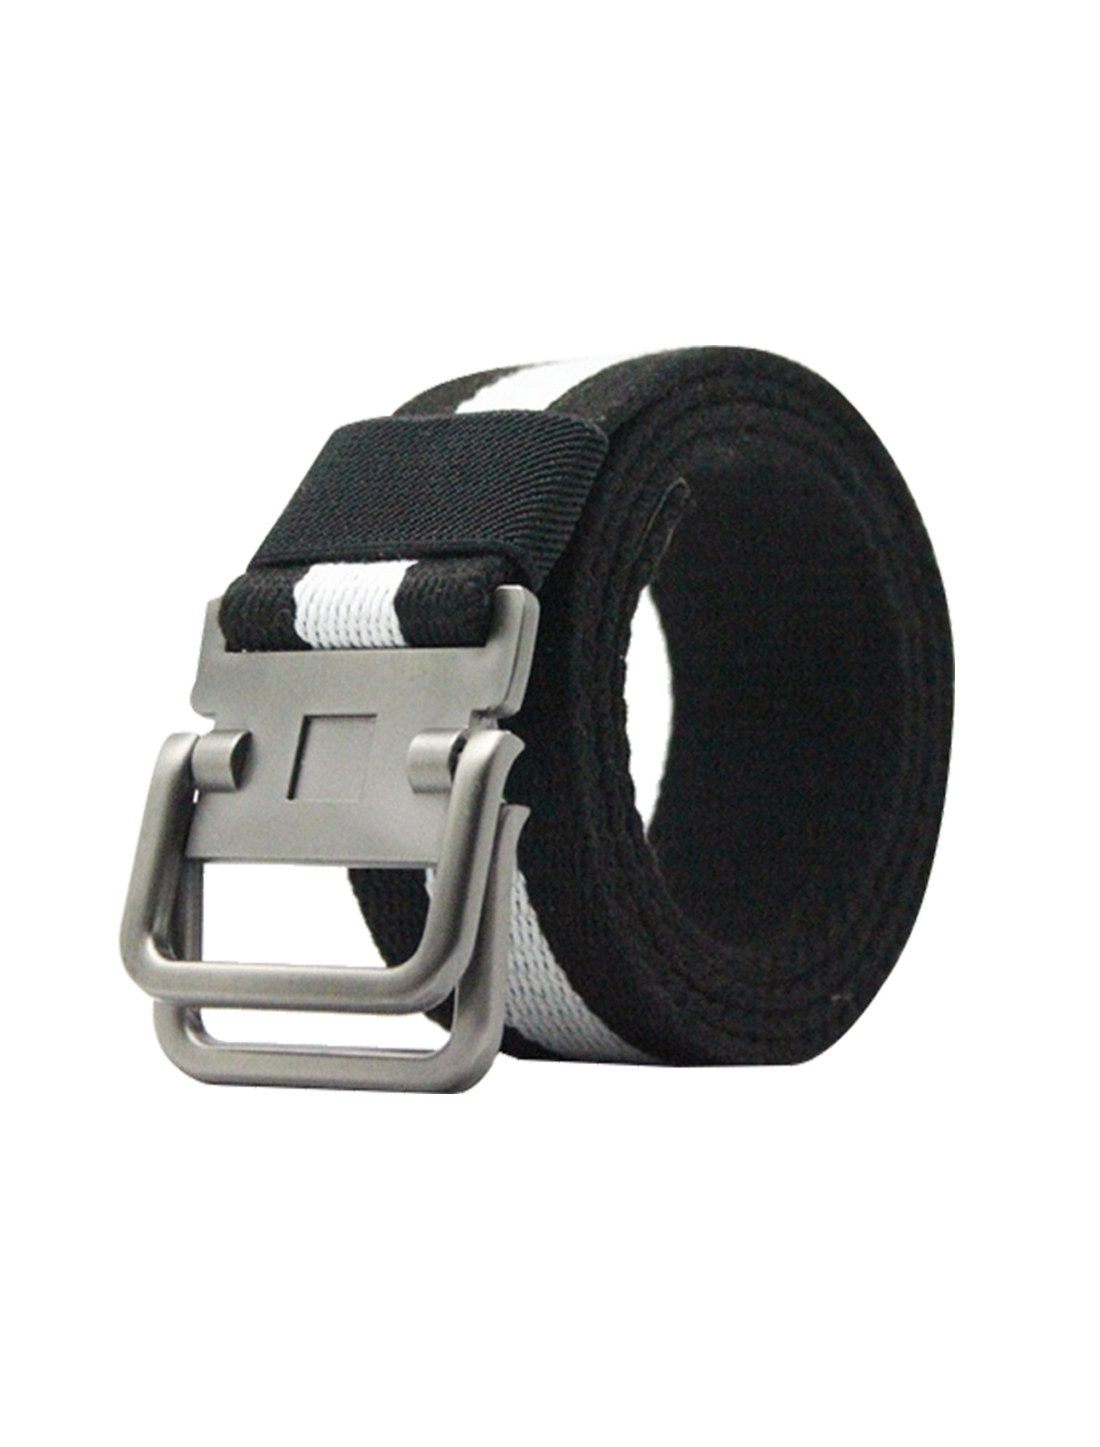 Unisex Canvas Double Ring Adjustable Holeless Metal Buckle Belt Black White